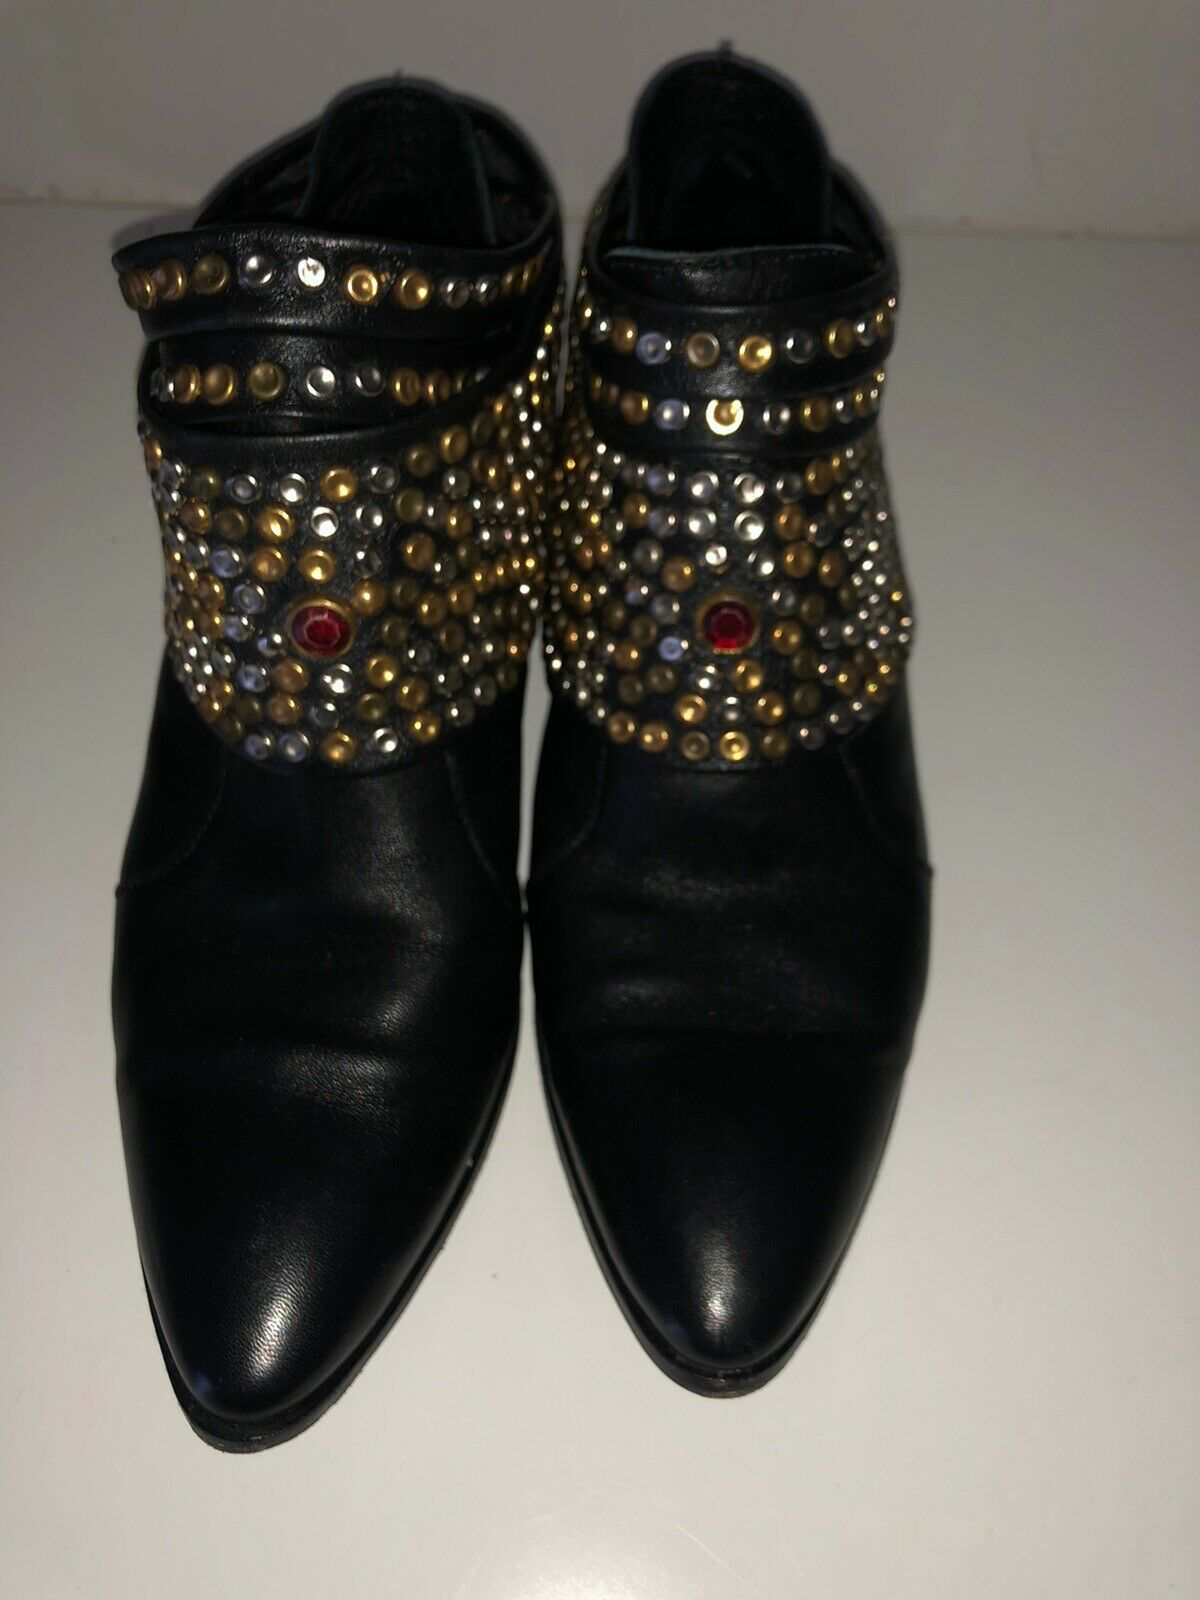 Modern Vice Collection-Chloe Studded Removable Hardware Bootie Size 37 Fits 37.5